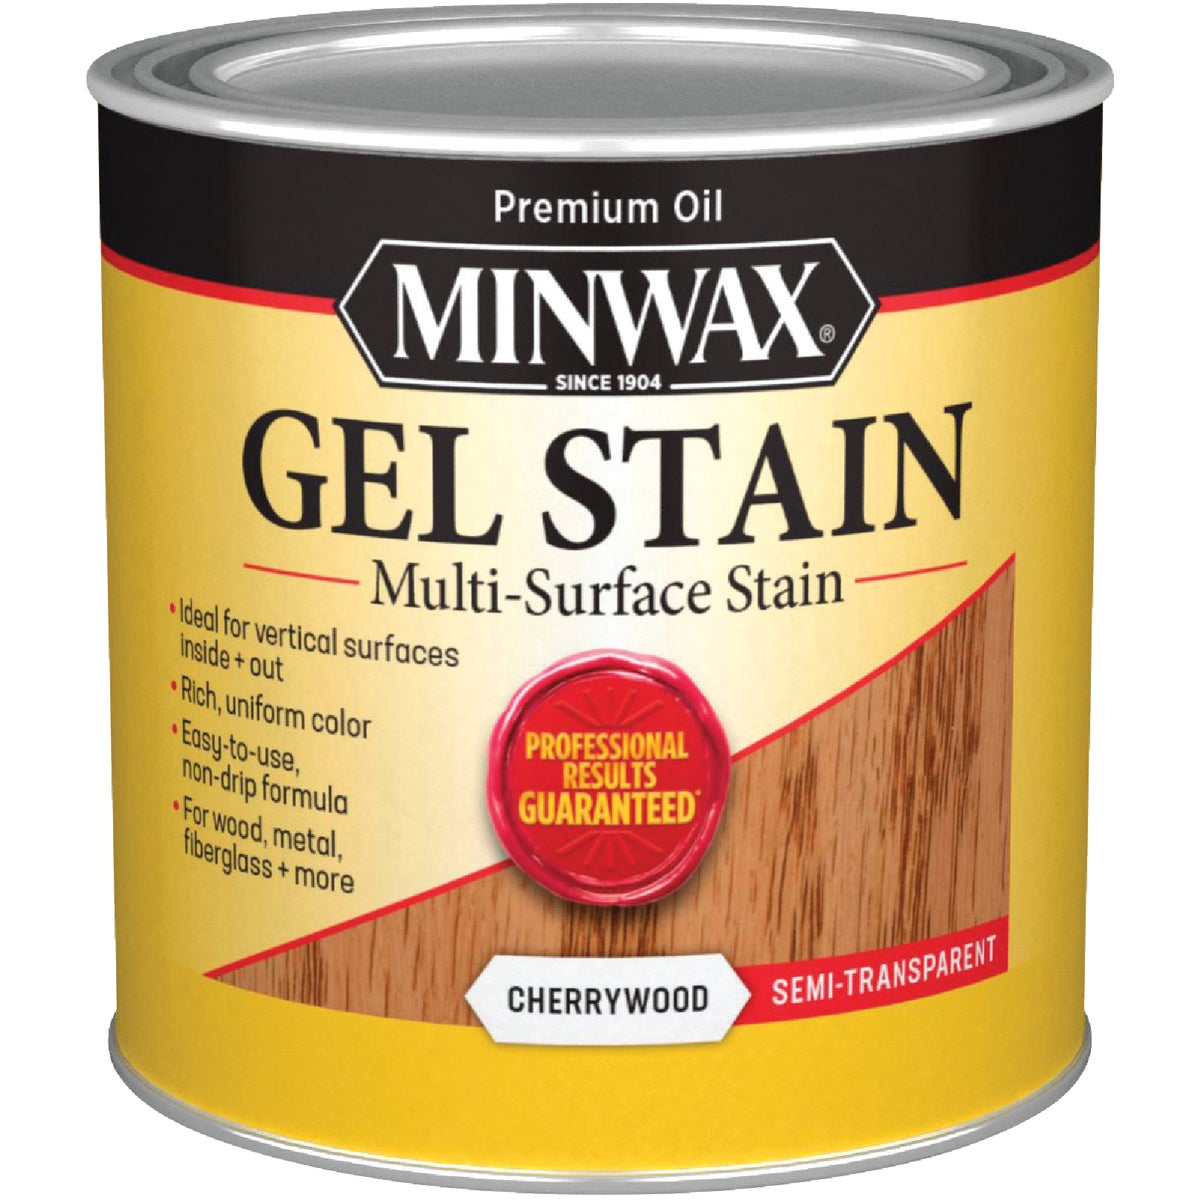 CHERRYWOOD GEL STAIN - 260704444 by Minwax Company